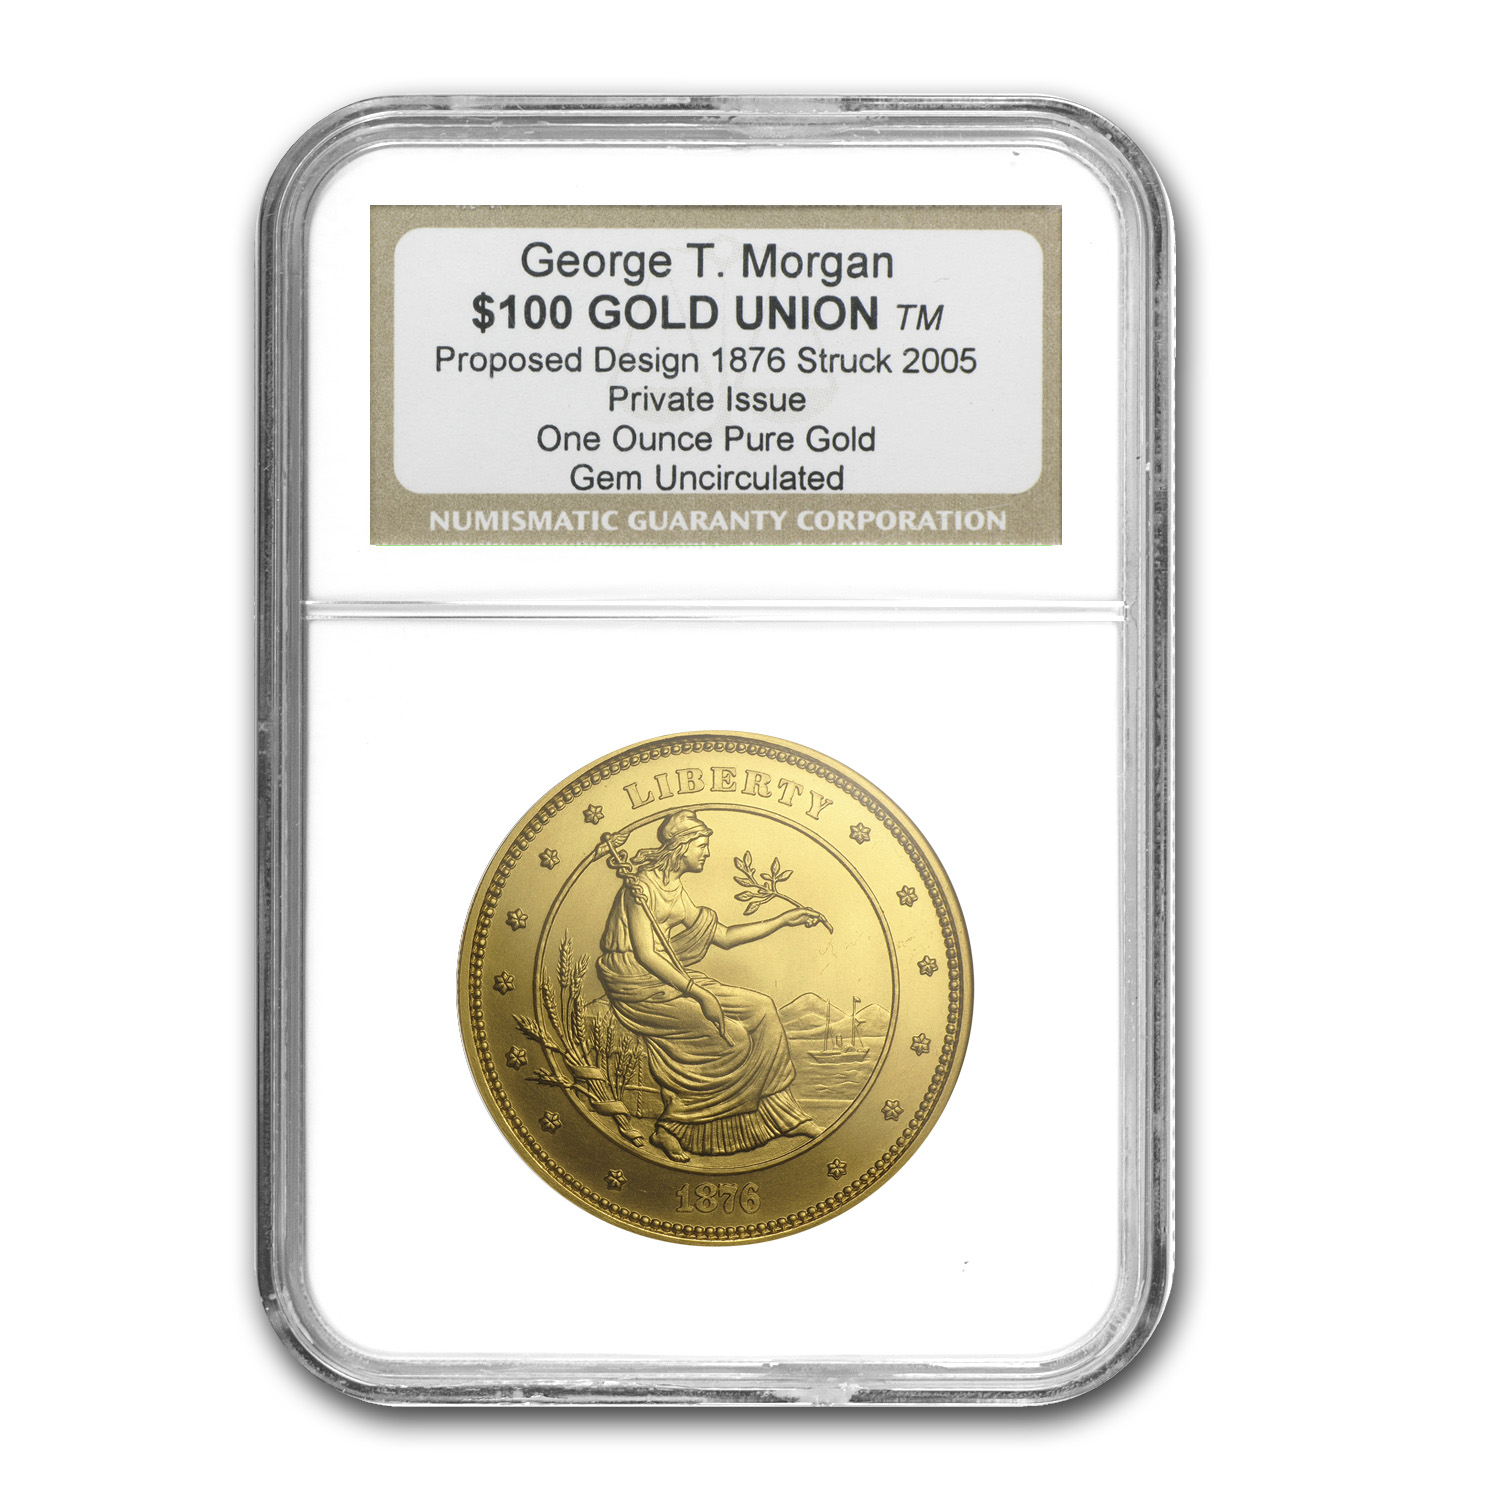 1 oz Gold Round - $100 Gold Union George T. Morgan (NGC, Gem Unc)